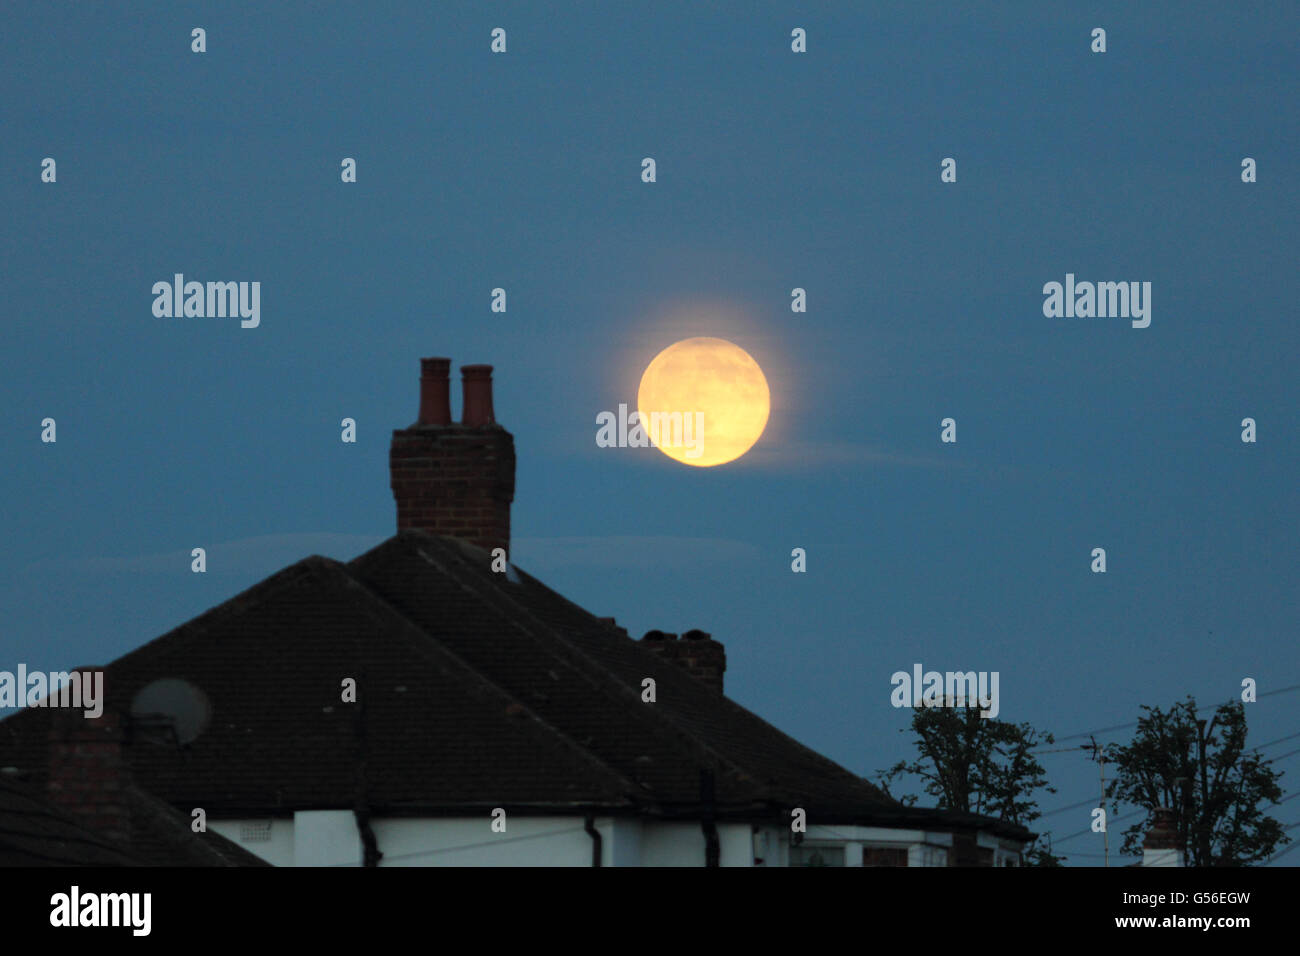 Epsom, Surrey, England, UK. 20th June 2016. The orange glow over the roof tops of the rising full or 'strawberry - Stock Image